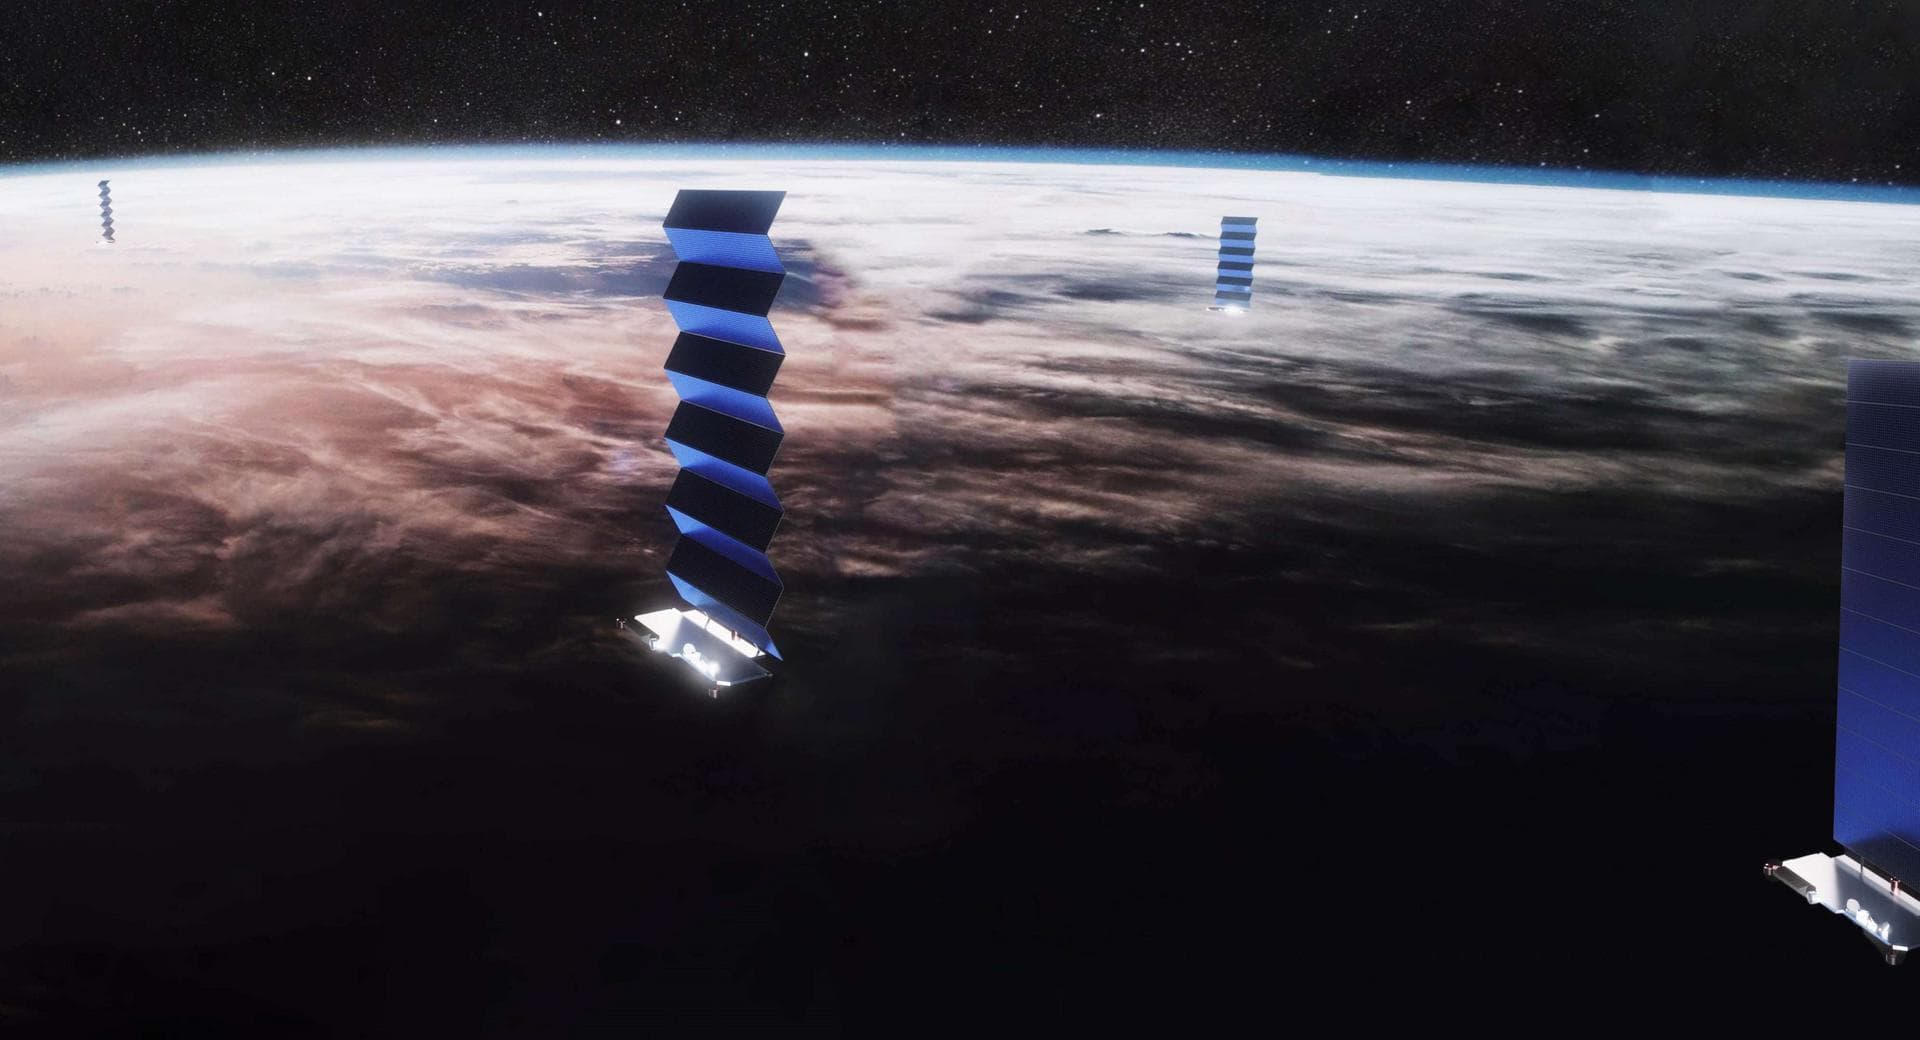 https://universemagazine.com/wp-content/uploads/2019/07/Starlink-solar-array-deploy-SpaceX-pano-3-crop-c.jpg